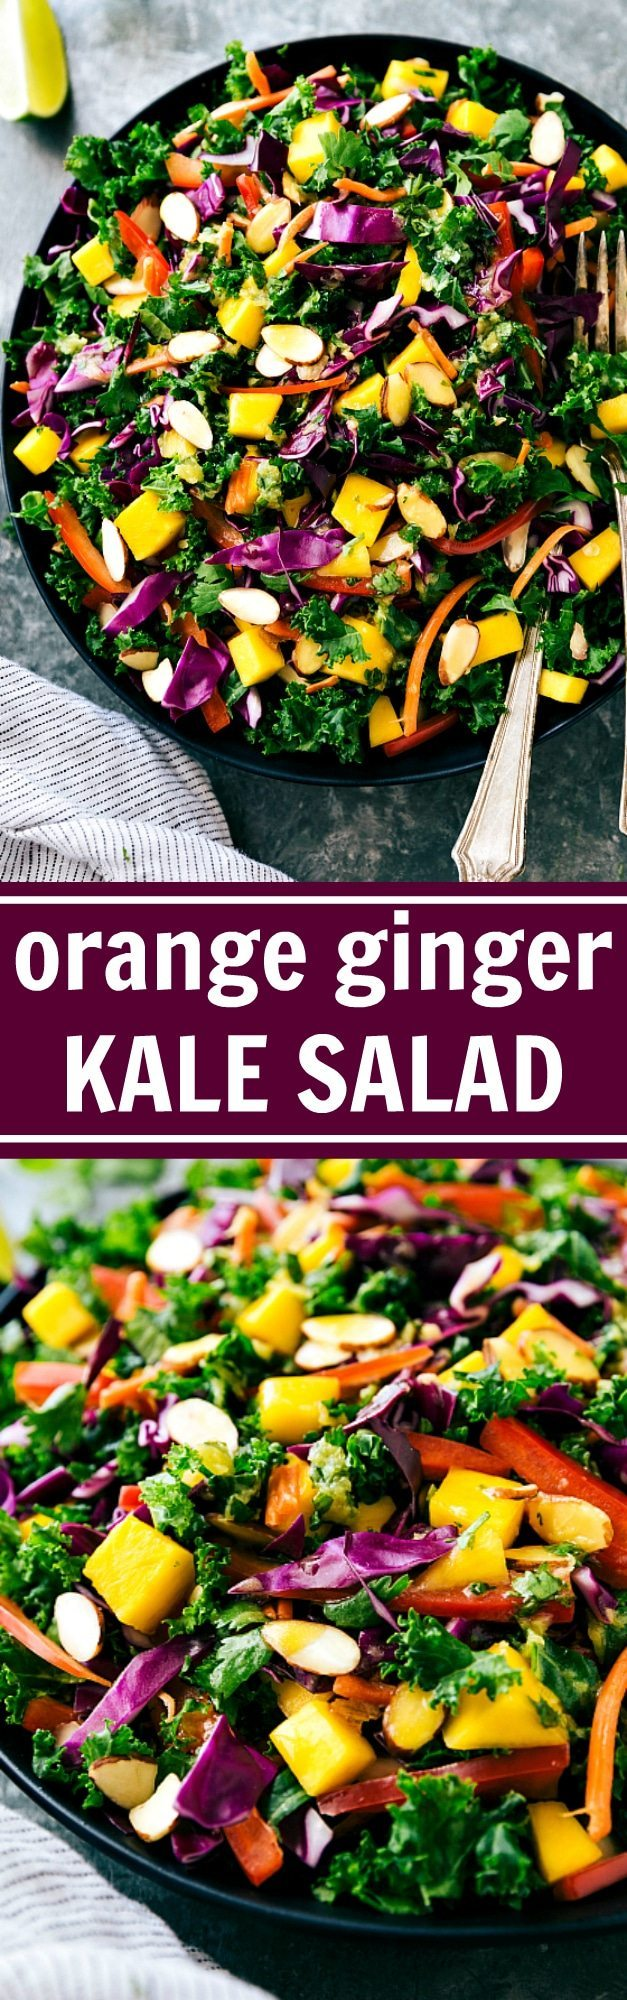 A delicious orange ginger dressed greek salad recipe from chelseasmessyapron.com